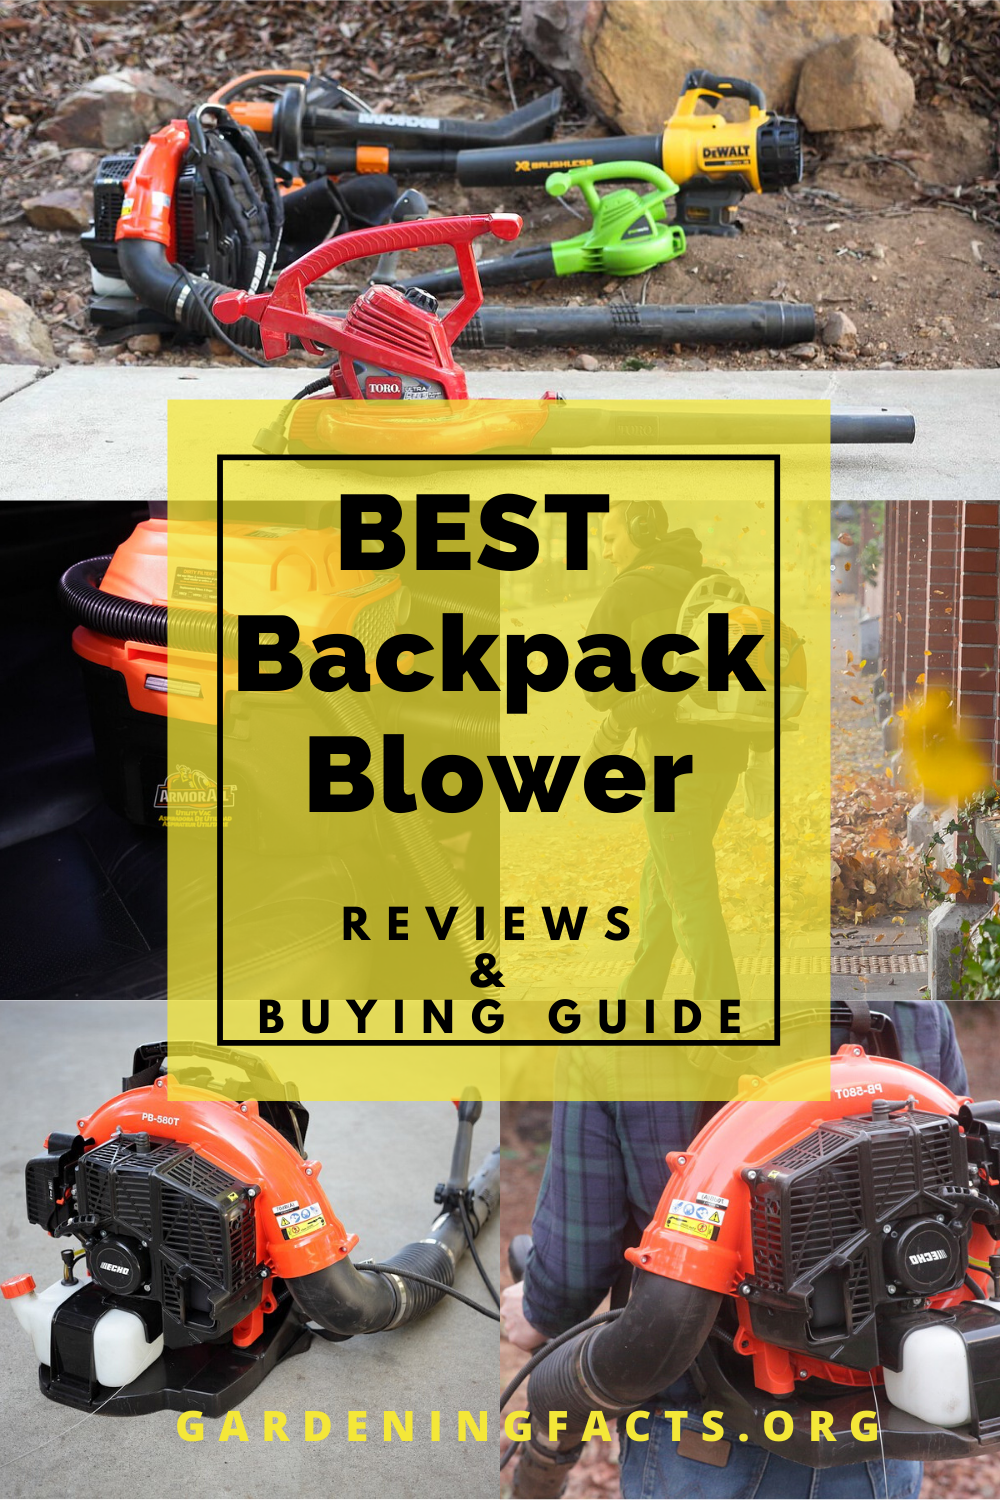 Best Backpack Blower 2020 Reviews Buying Guide In 2020 Backpack Blowers Cool Backpacks Backpacks